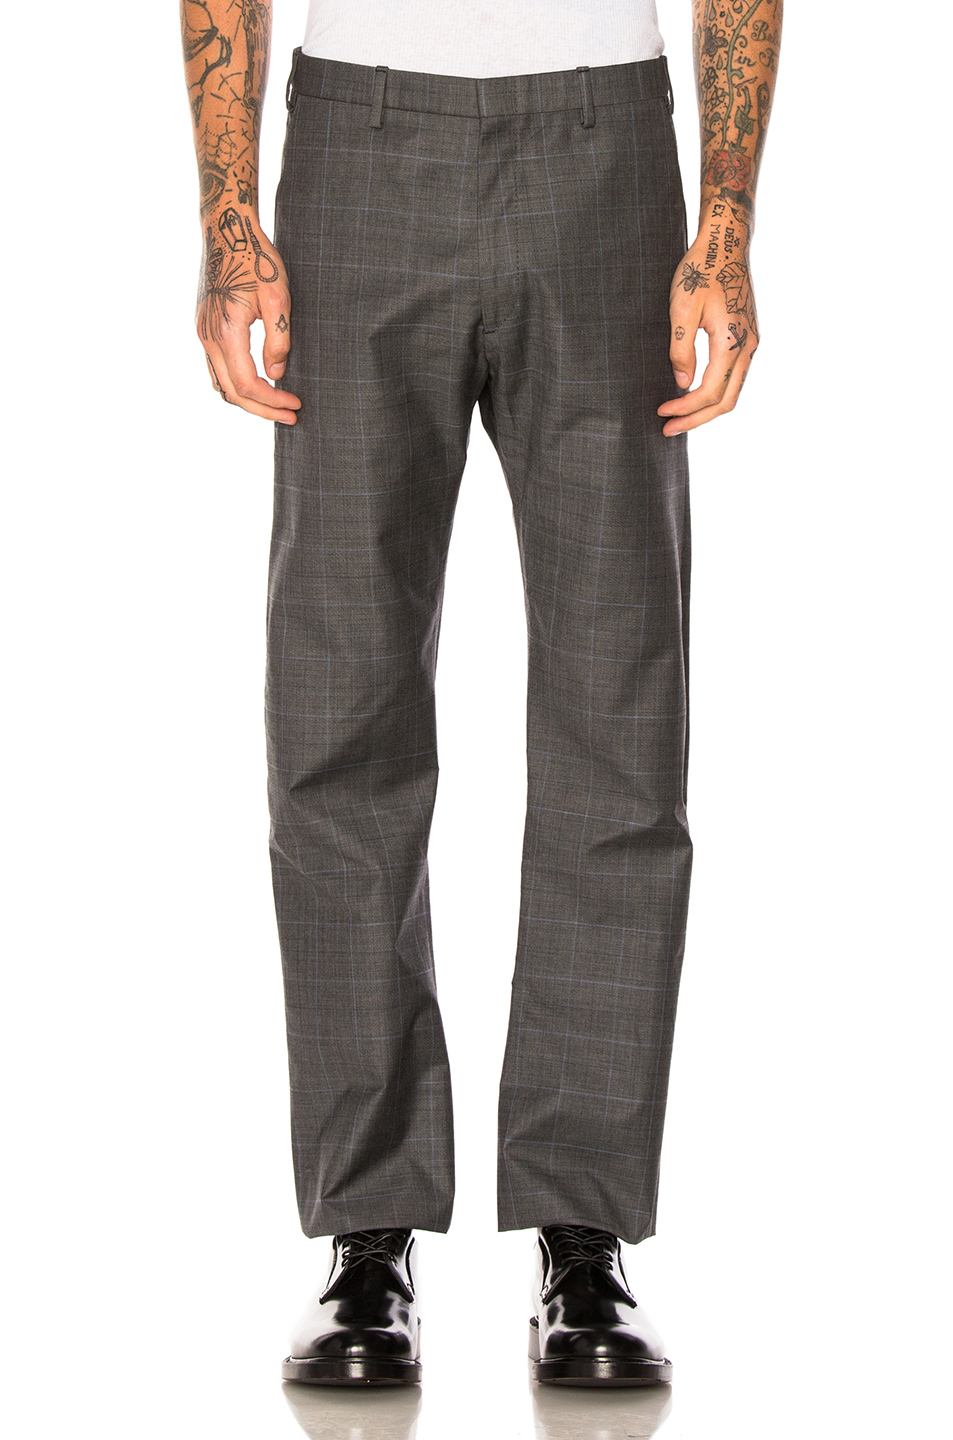 VETEMENTS x Brioni Oversized Slim Pants in Gray,Checkered & Plaid